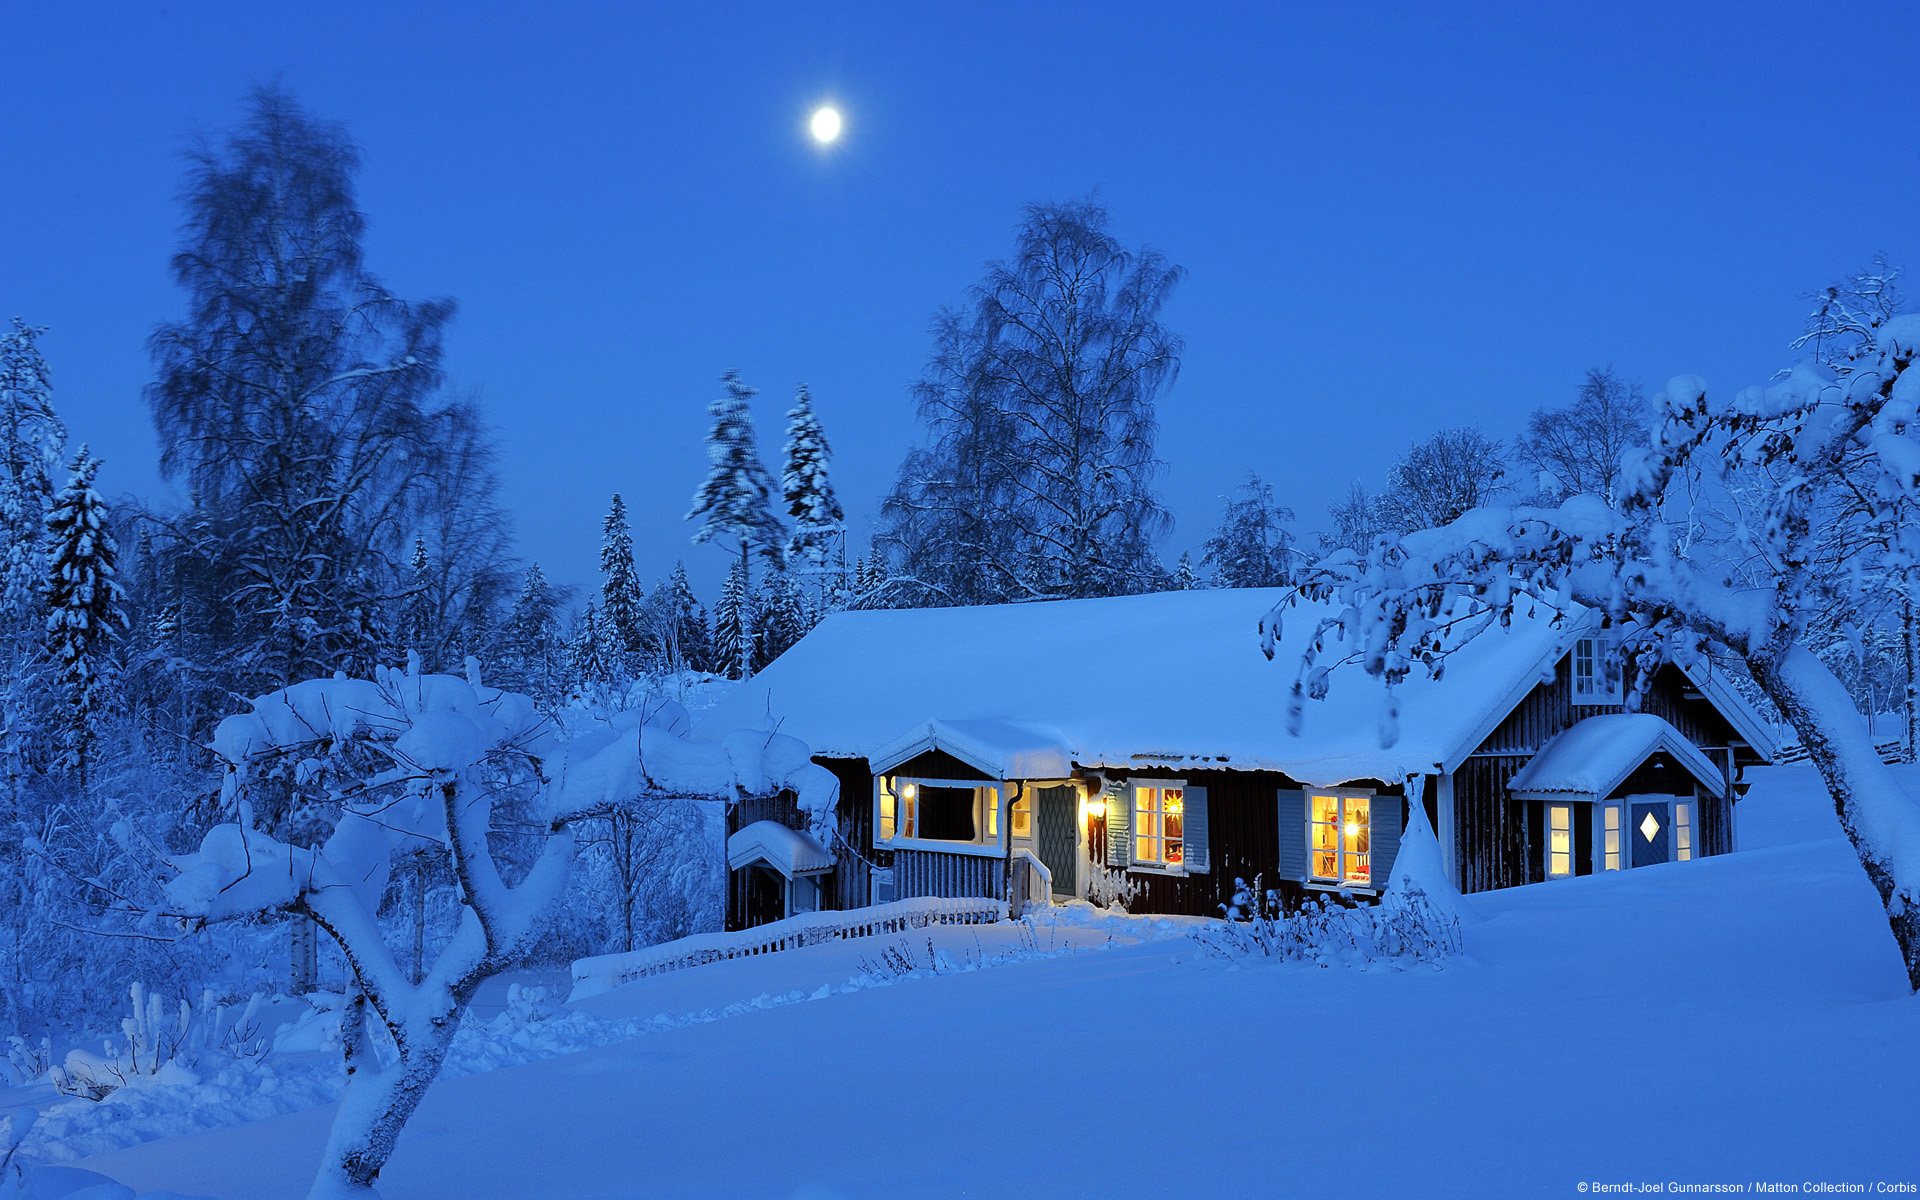 Country House in Winter Dalarna Sweden 1920x1200